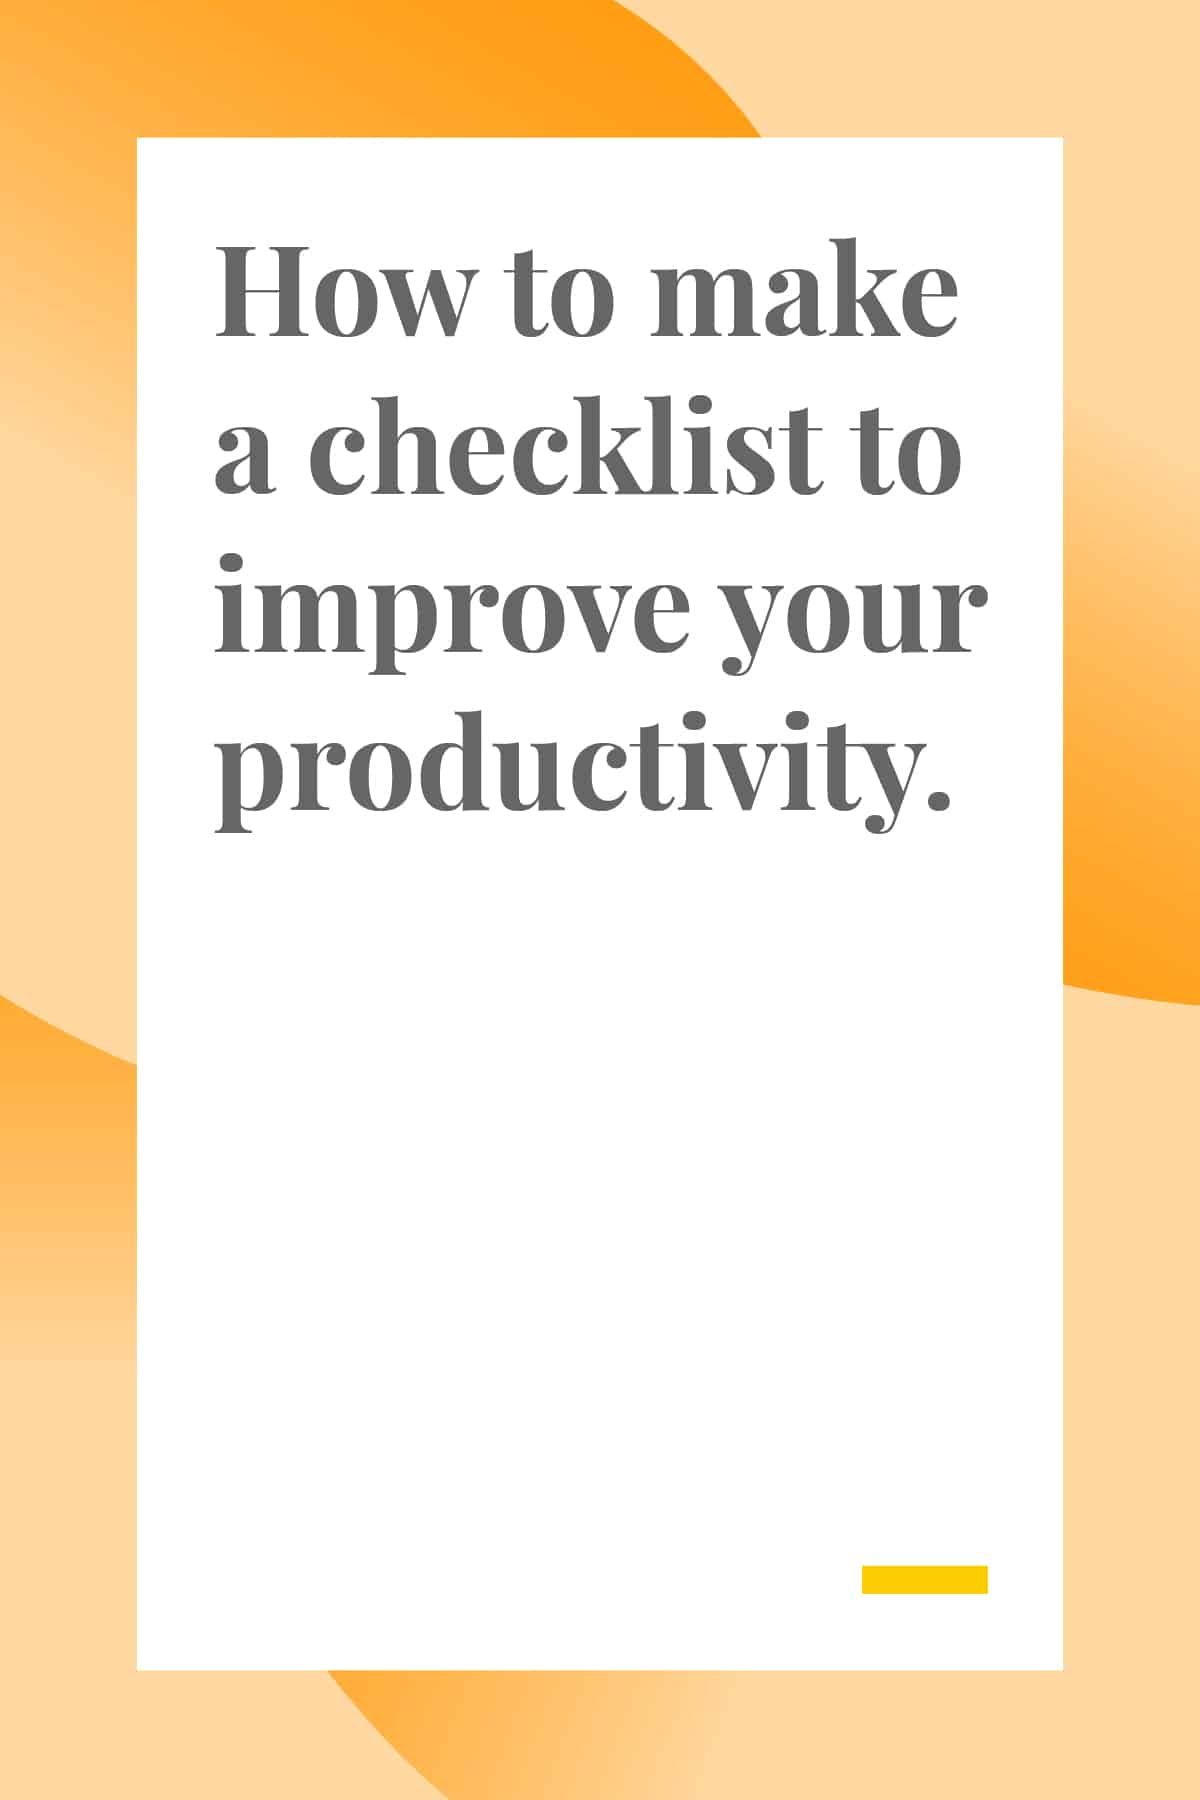 Want to improve your productivity? A simple checklist might be just the tool you need. Here's how to use a checklist effectively so you can get more done. #productivity